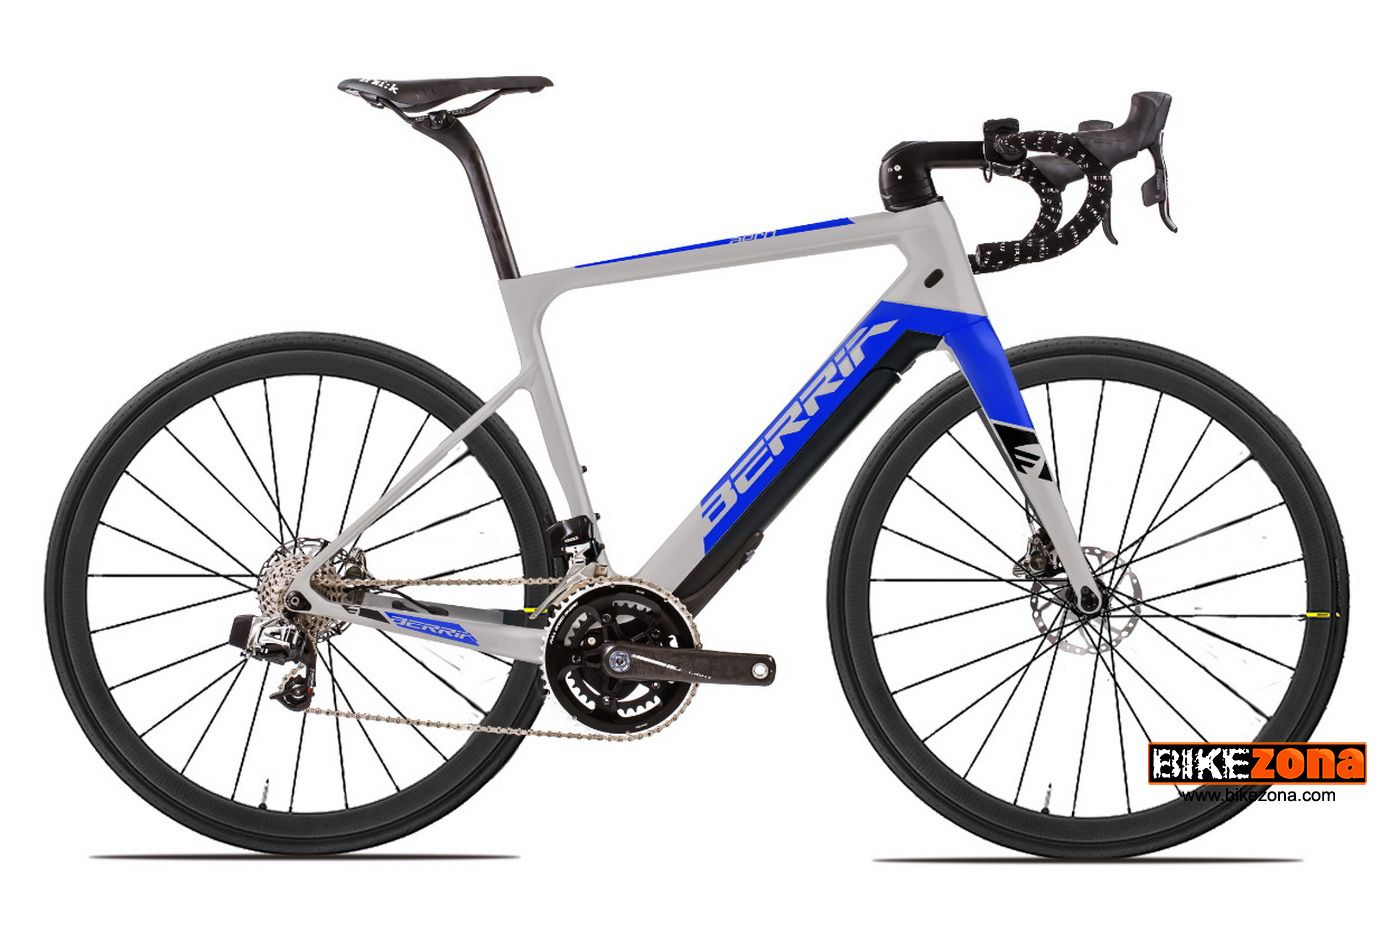 BERRIA BELADOR AERO HYBRID 9.3   <span style='color:#ff7132; font-size:22px ;text-shadow: 1px 1px 2px rgba(0, 0, 0, 1);'>8799 €</span>